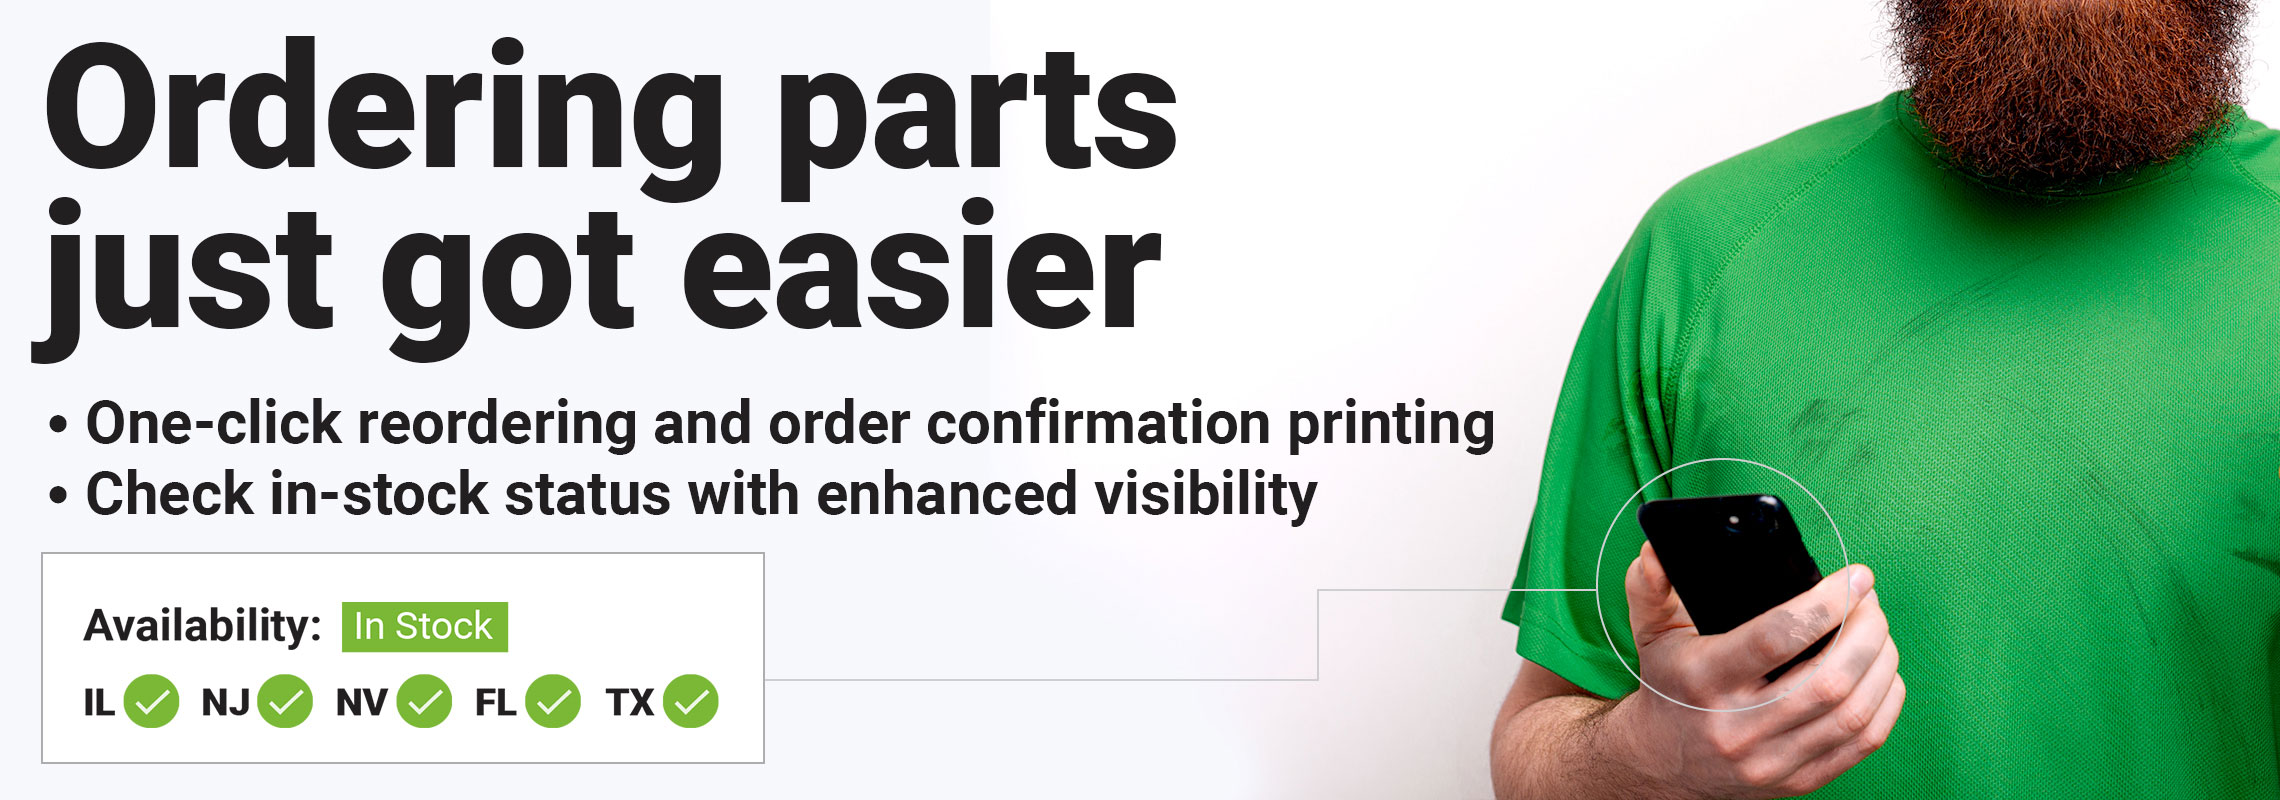 Ordering parts just got easier